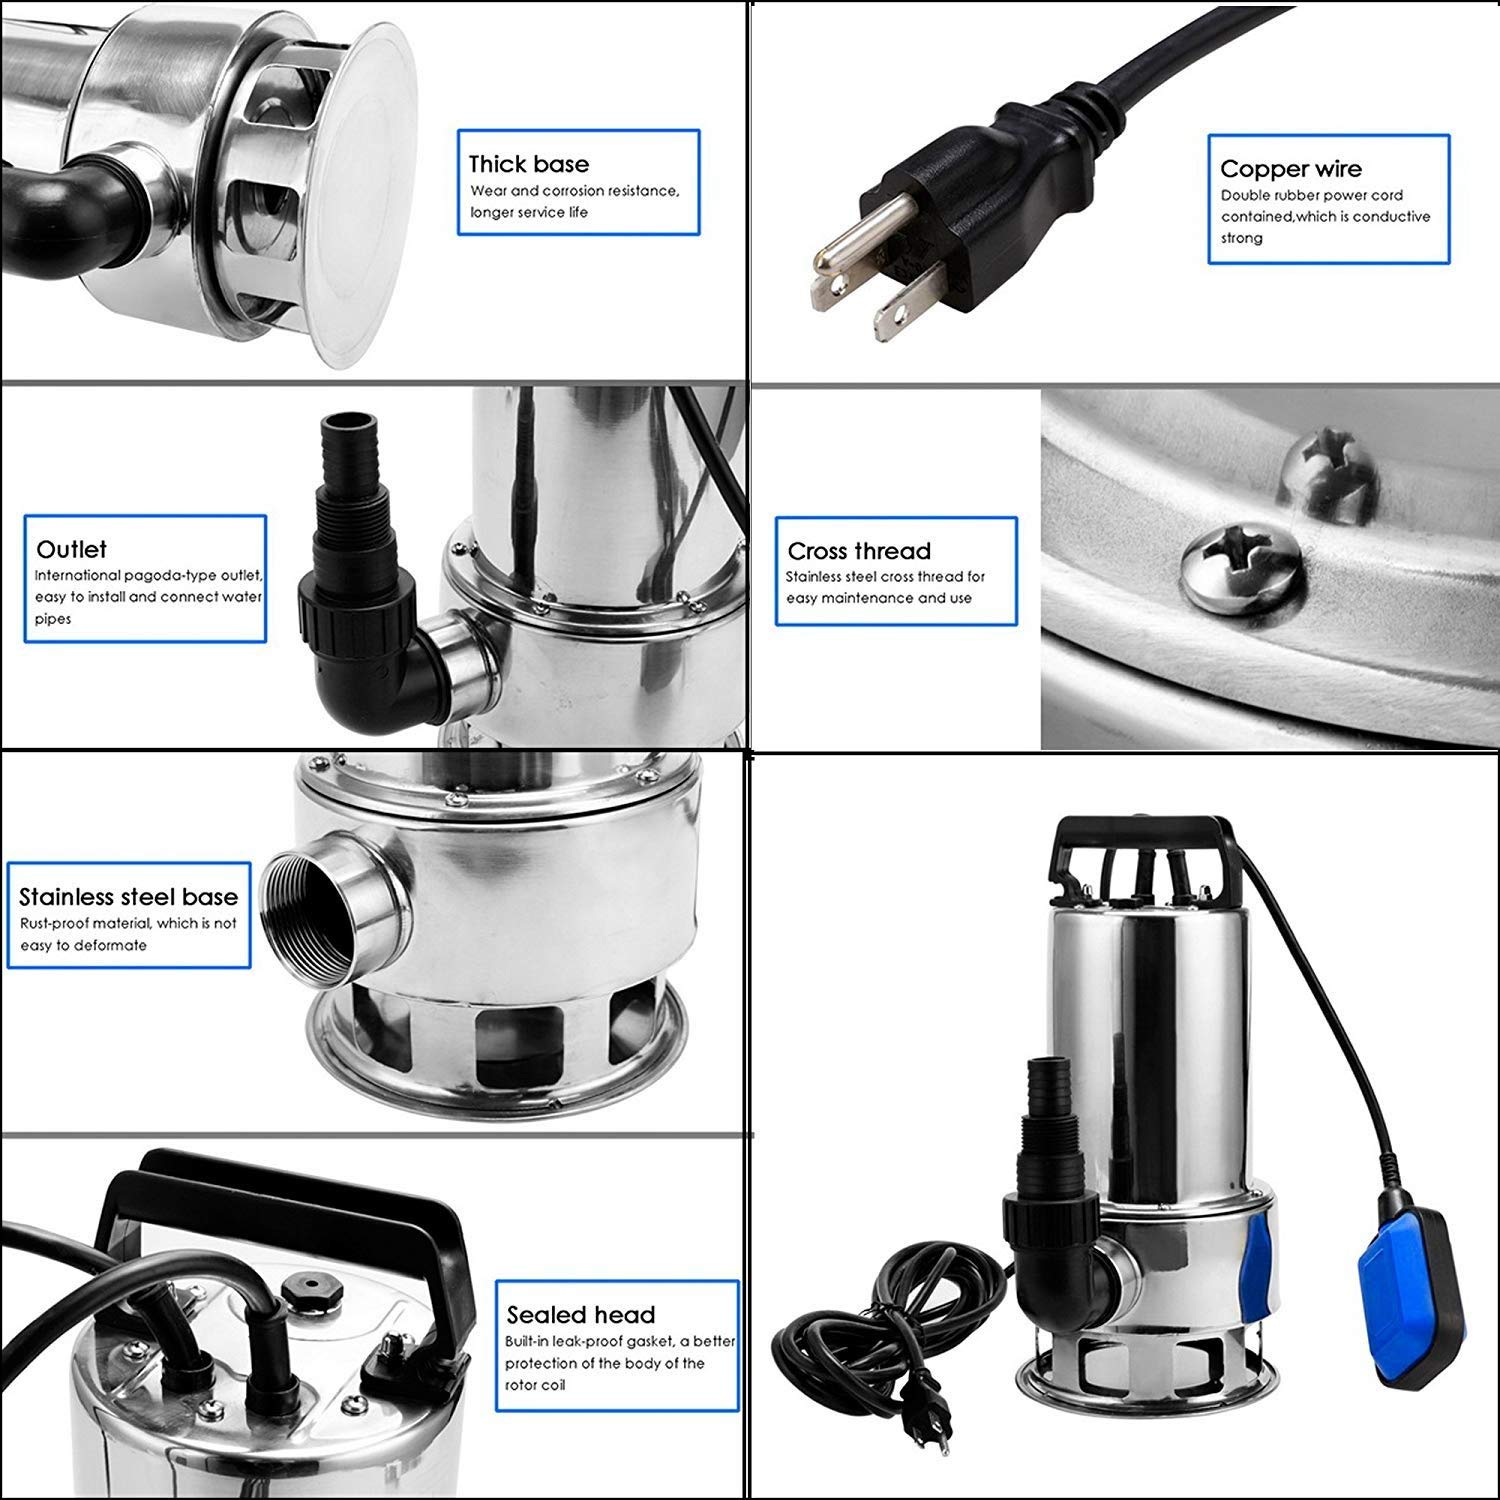 Homdox Submersible Water Pump 1.5 HP 1100W Garden Stainless Steel Sump Pump Pool Pump with Float Switch and 15ft Cable by Homdox (Image #5)